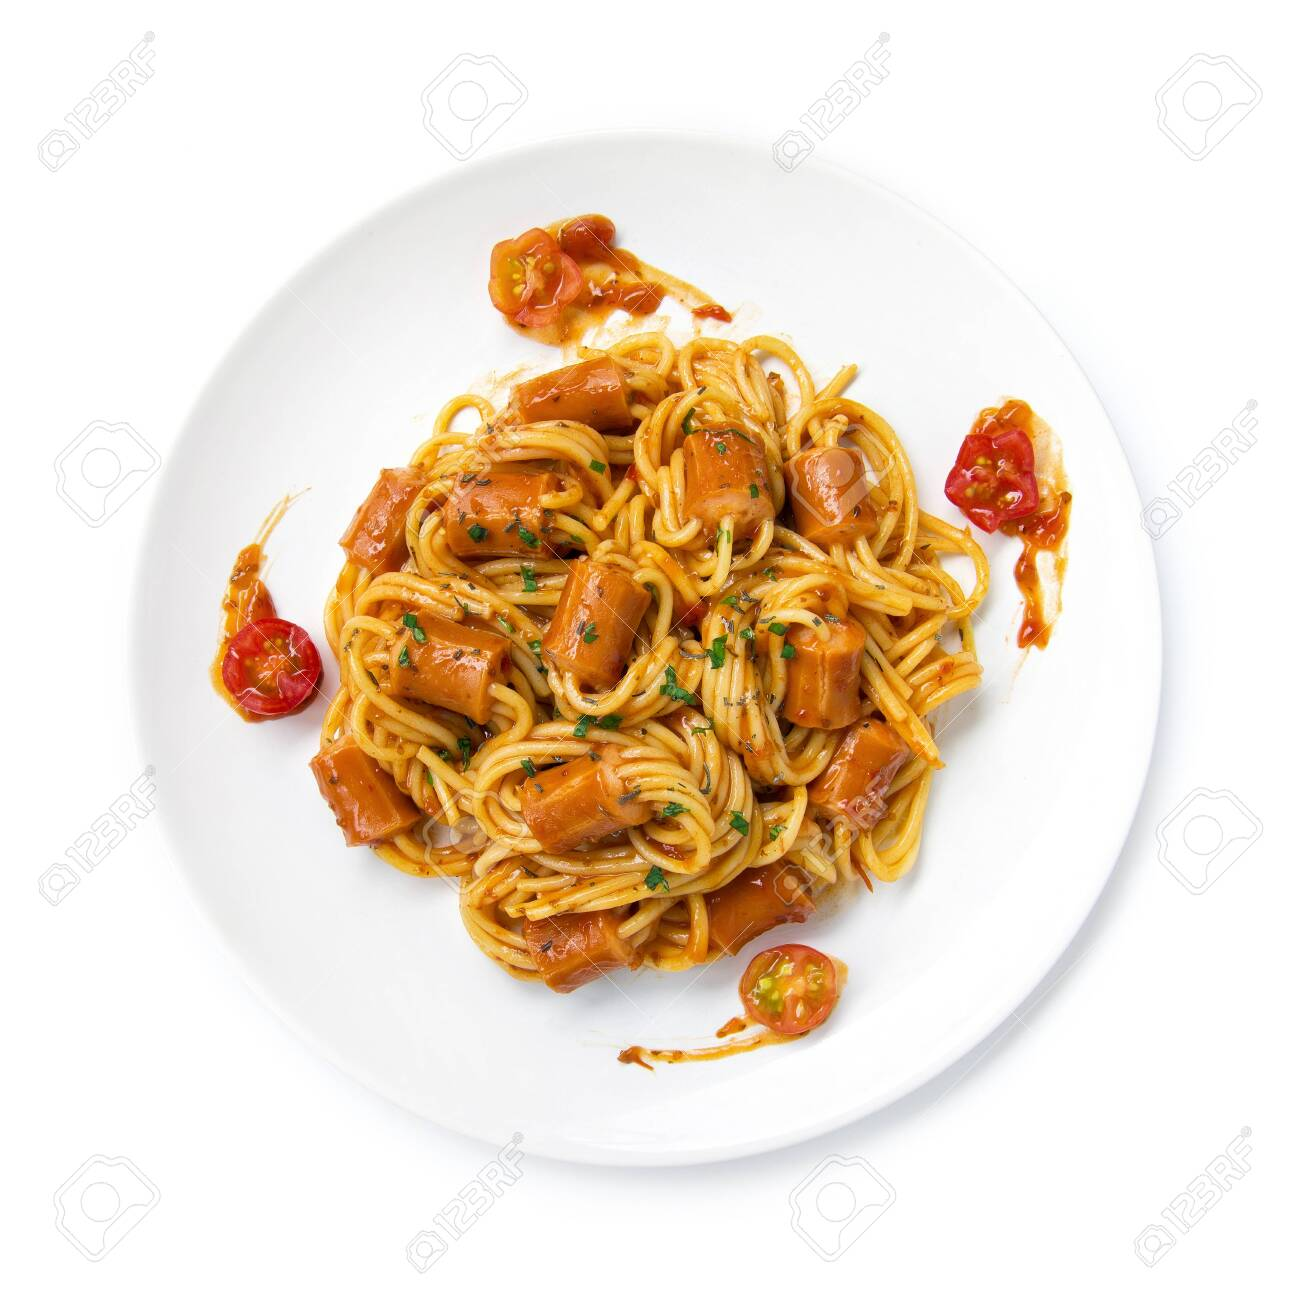 Spaghetti Bolognese with saucesage in tomato sauce topped chopped leaf basil sprinkle fusion food Italian traditional style decorate with carved tomato cherry top view - 147647267